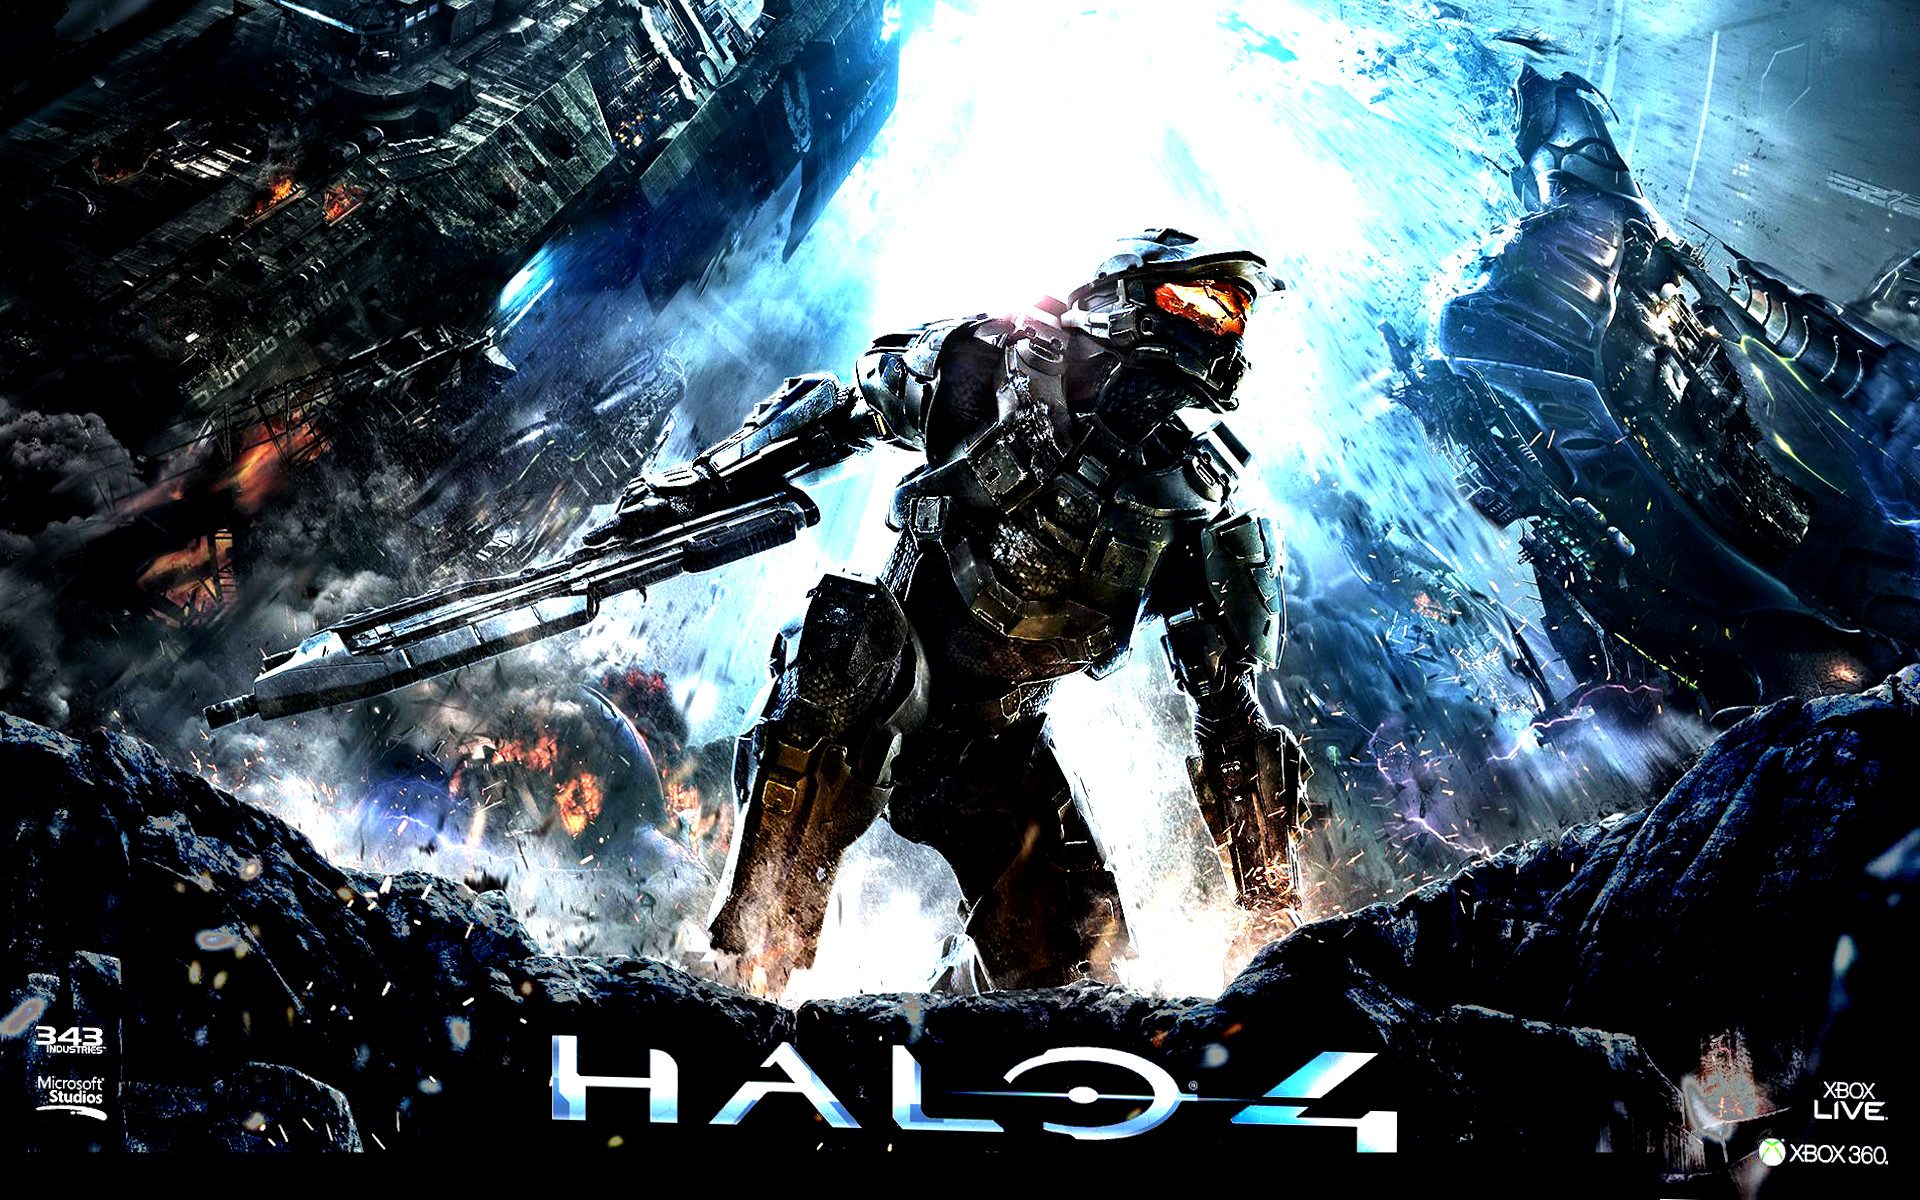 1920x1200 Halo 4 Enhanced Computer Wallpapers, Desktop Backgrounds |  .